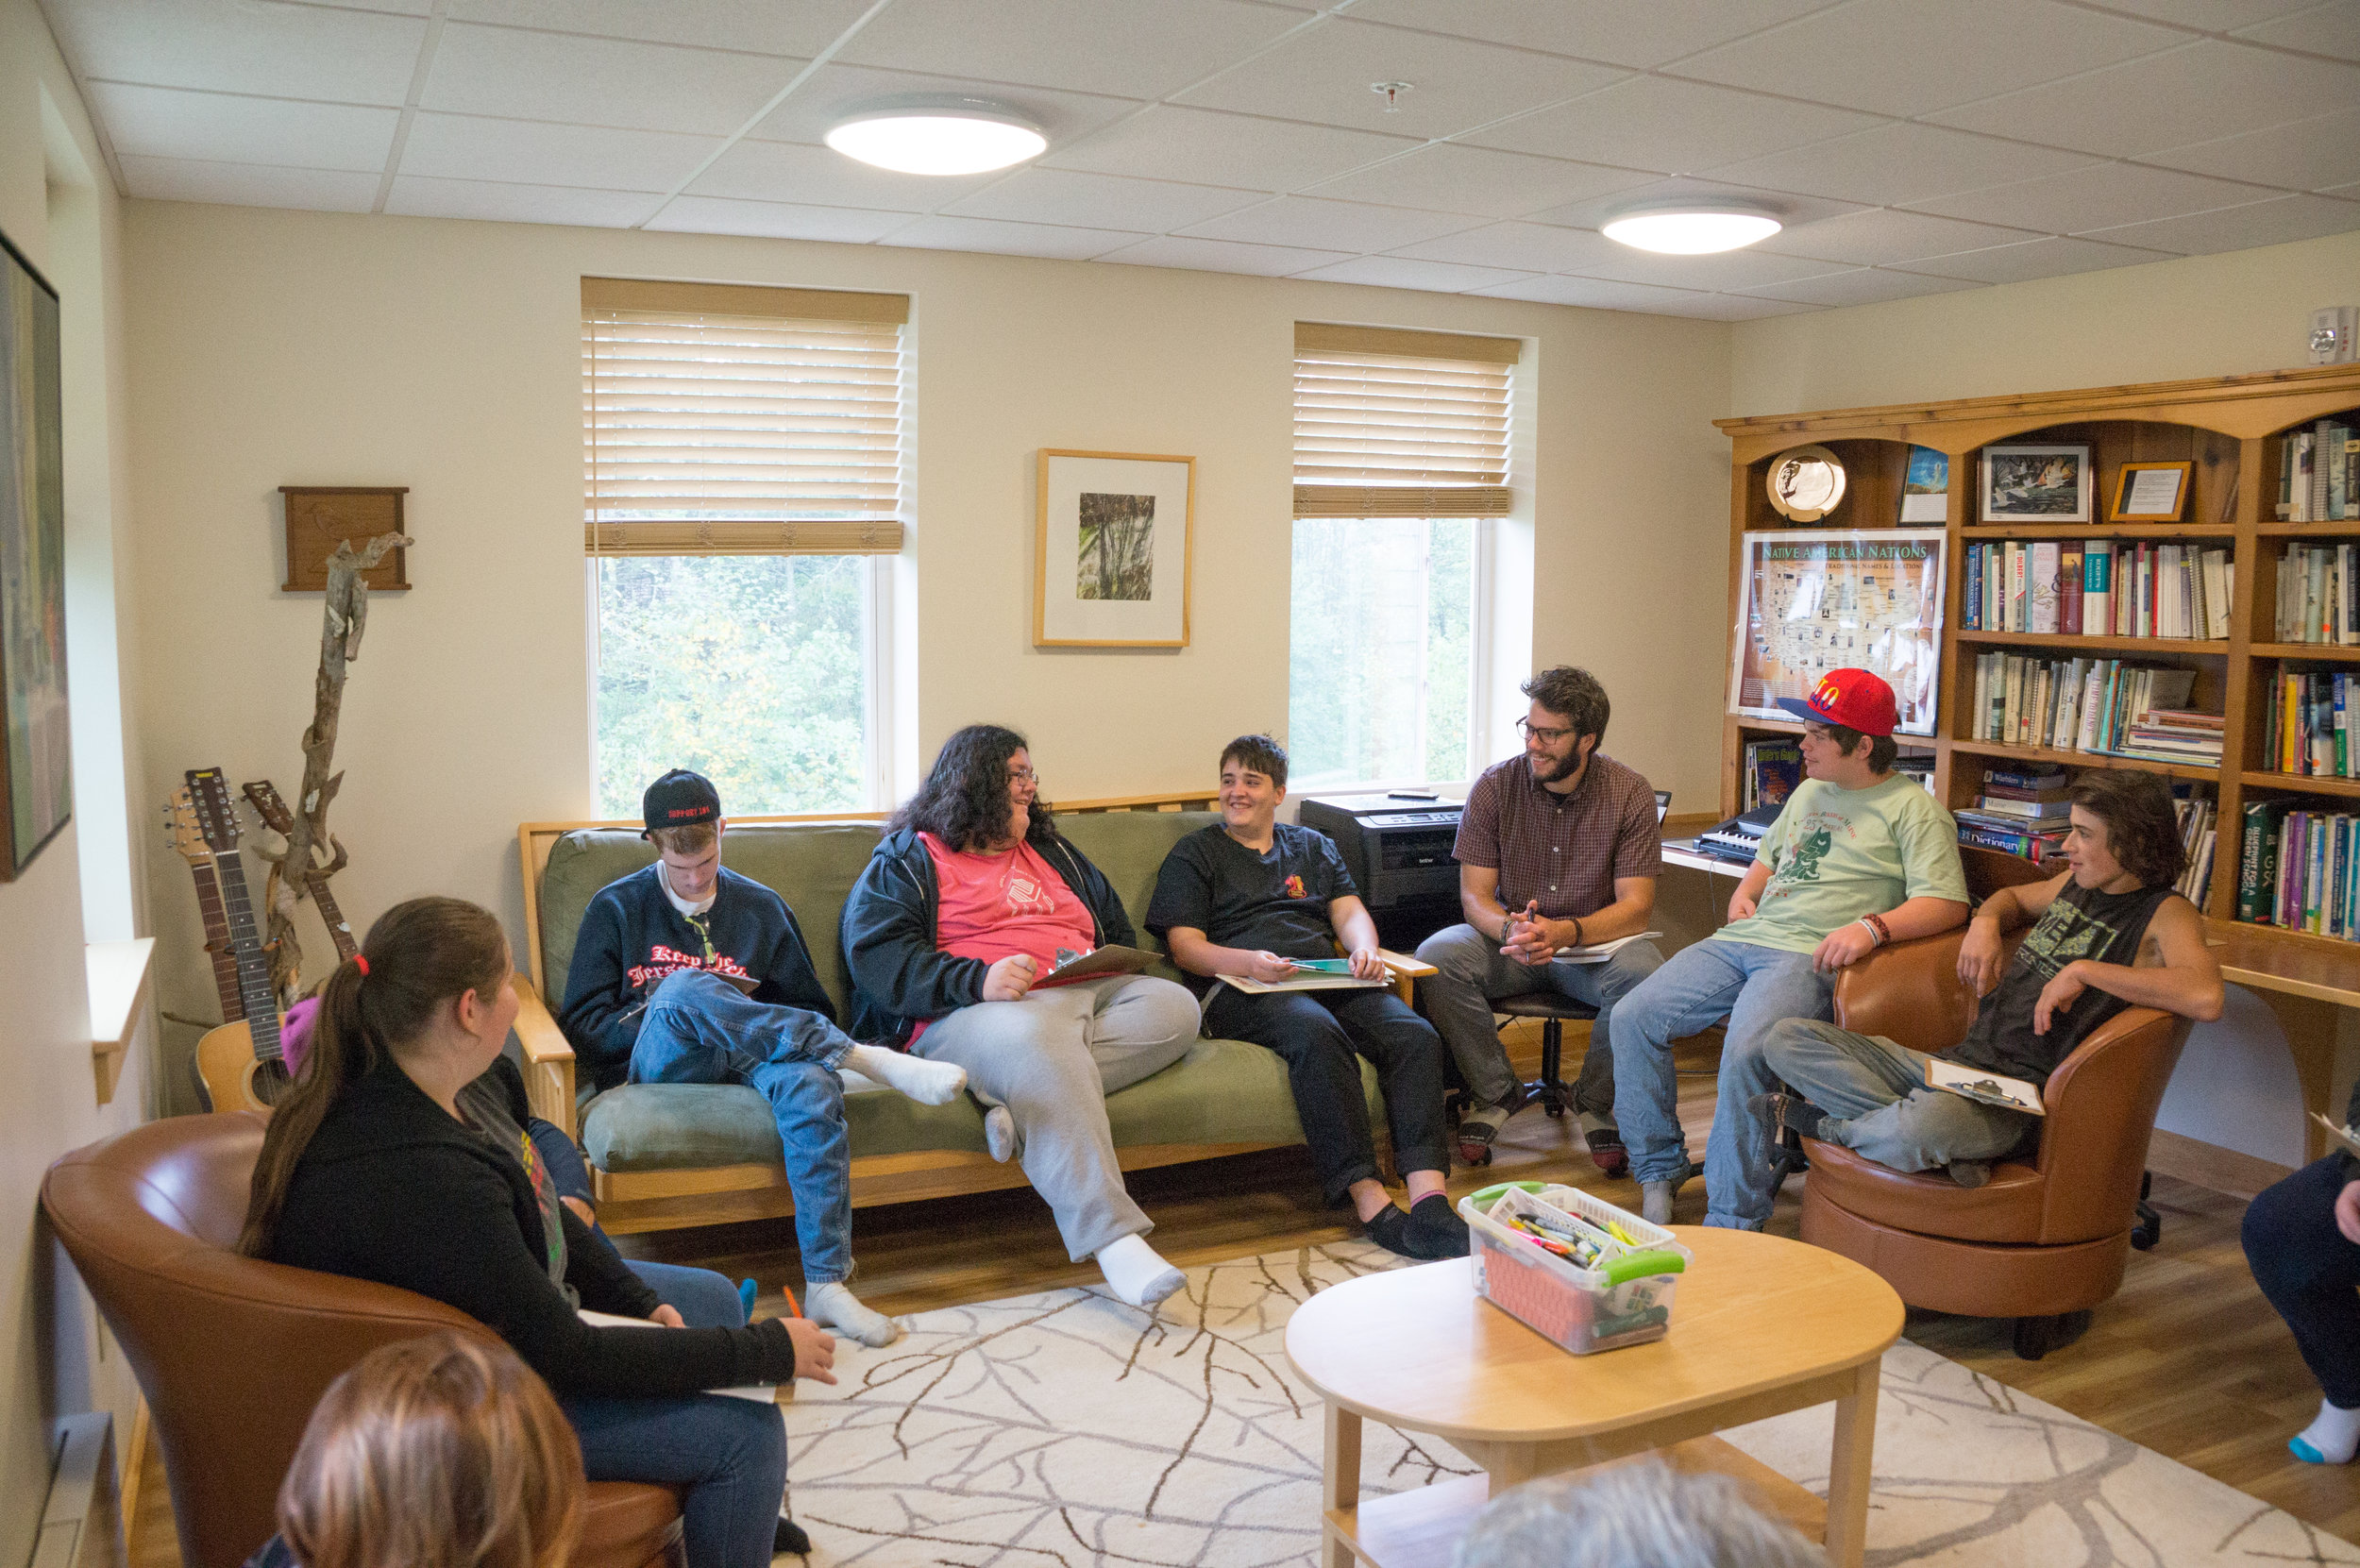 Students meeting with Marjorie Withers, former director of the Community Caring Collaborative